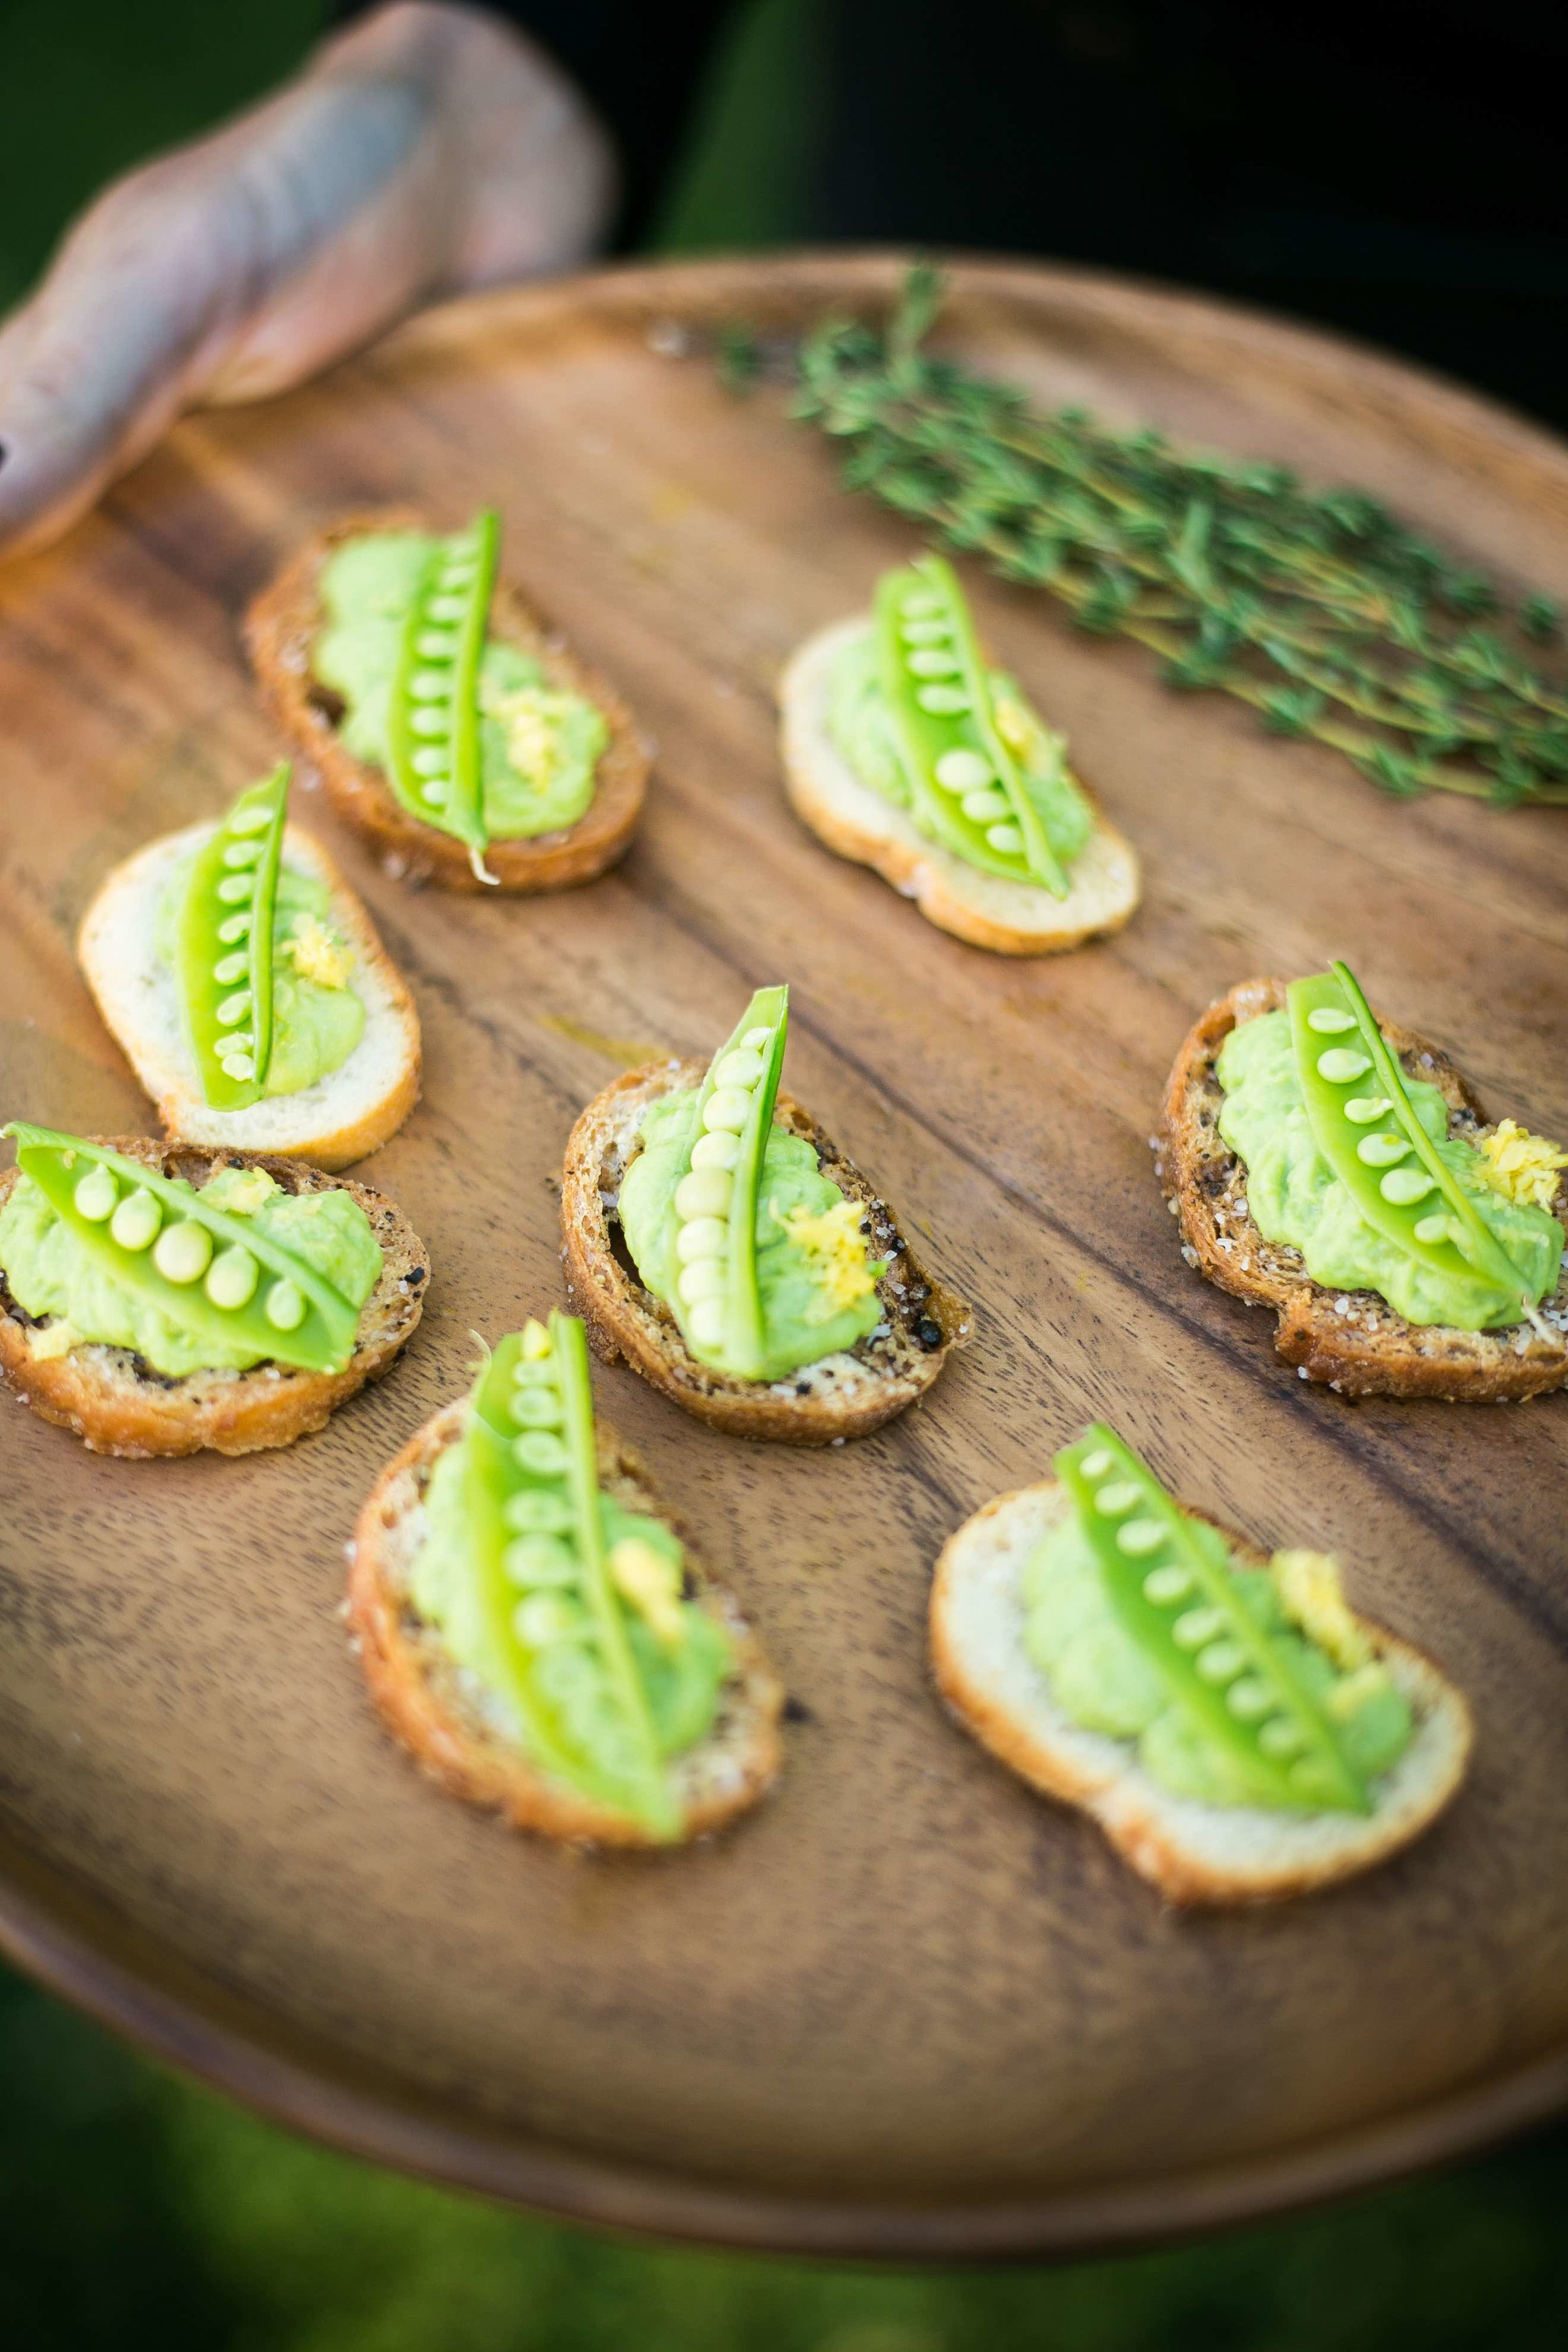 Sweet Pea & Ricotta Crostini by Dish Food & Events Catering